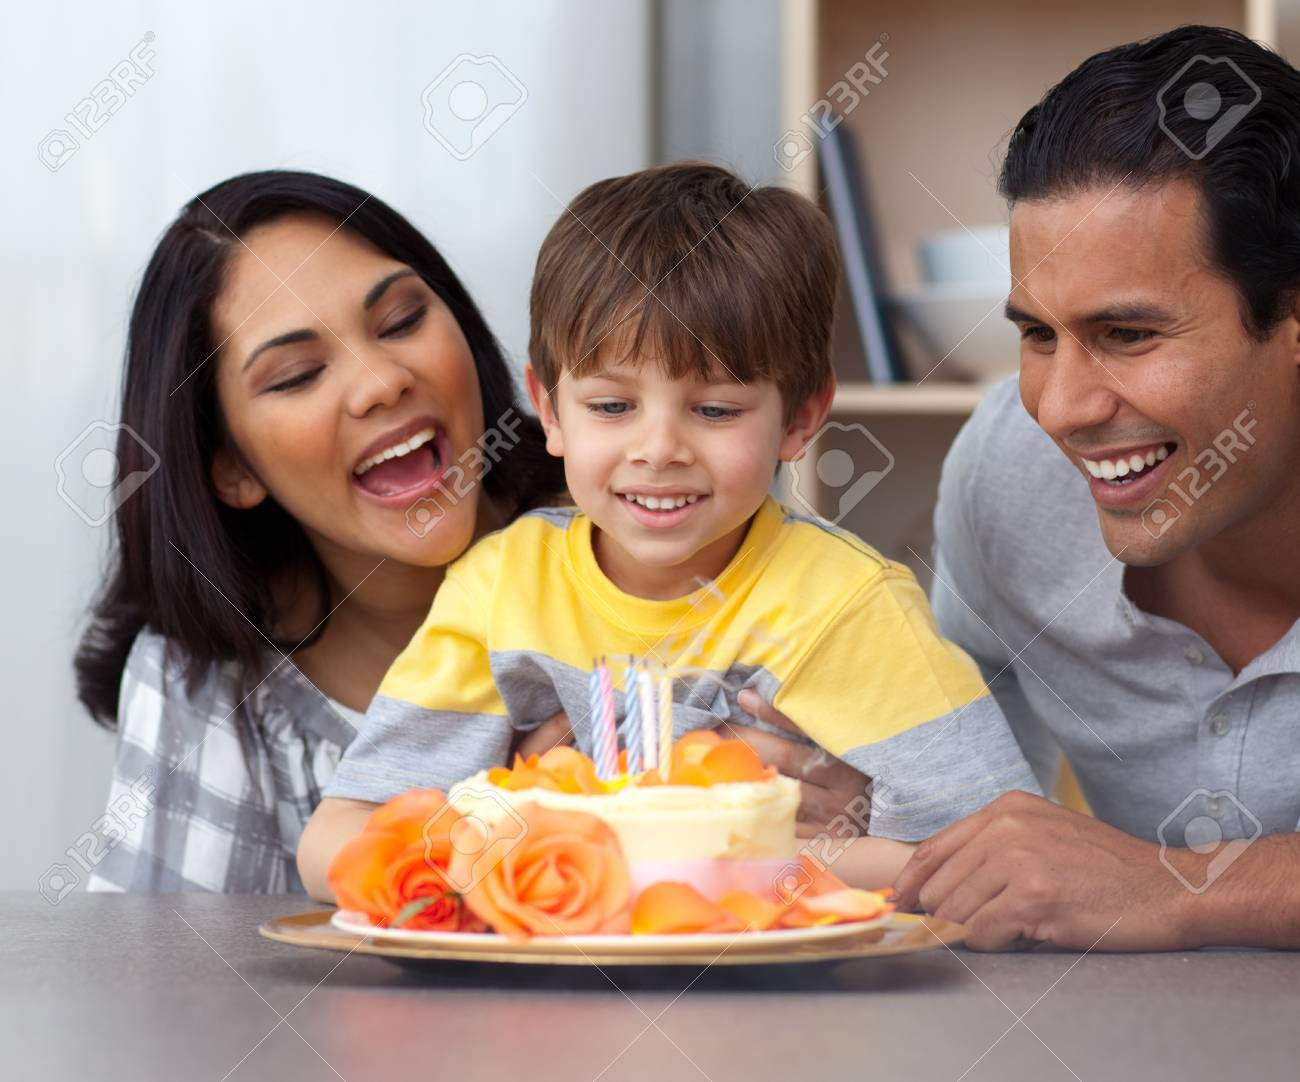 Close-up of child celebrating his birthday with his parents Stock Photo - 10095601